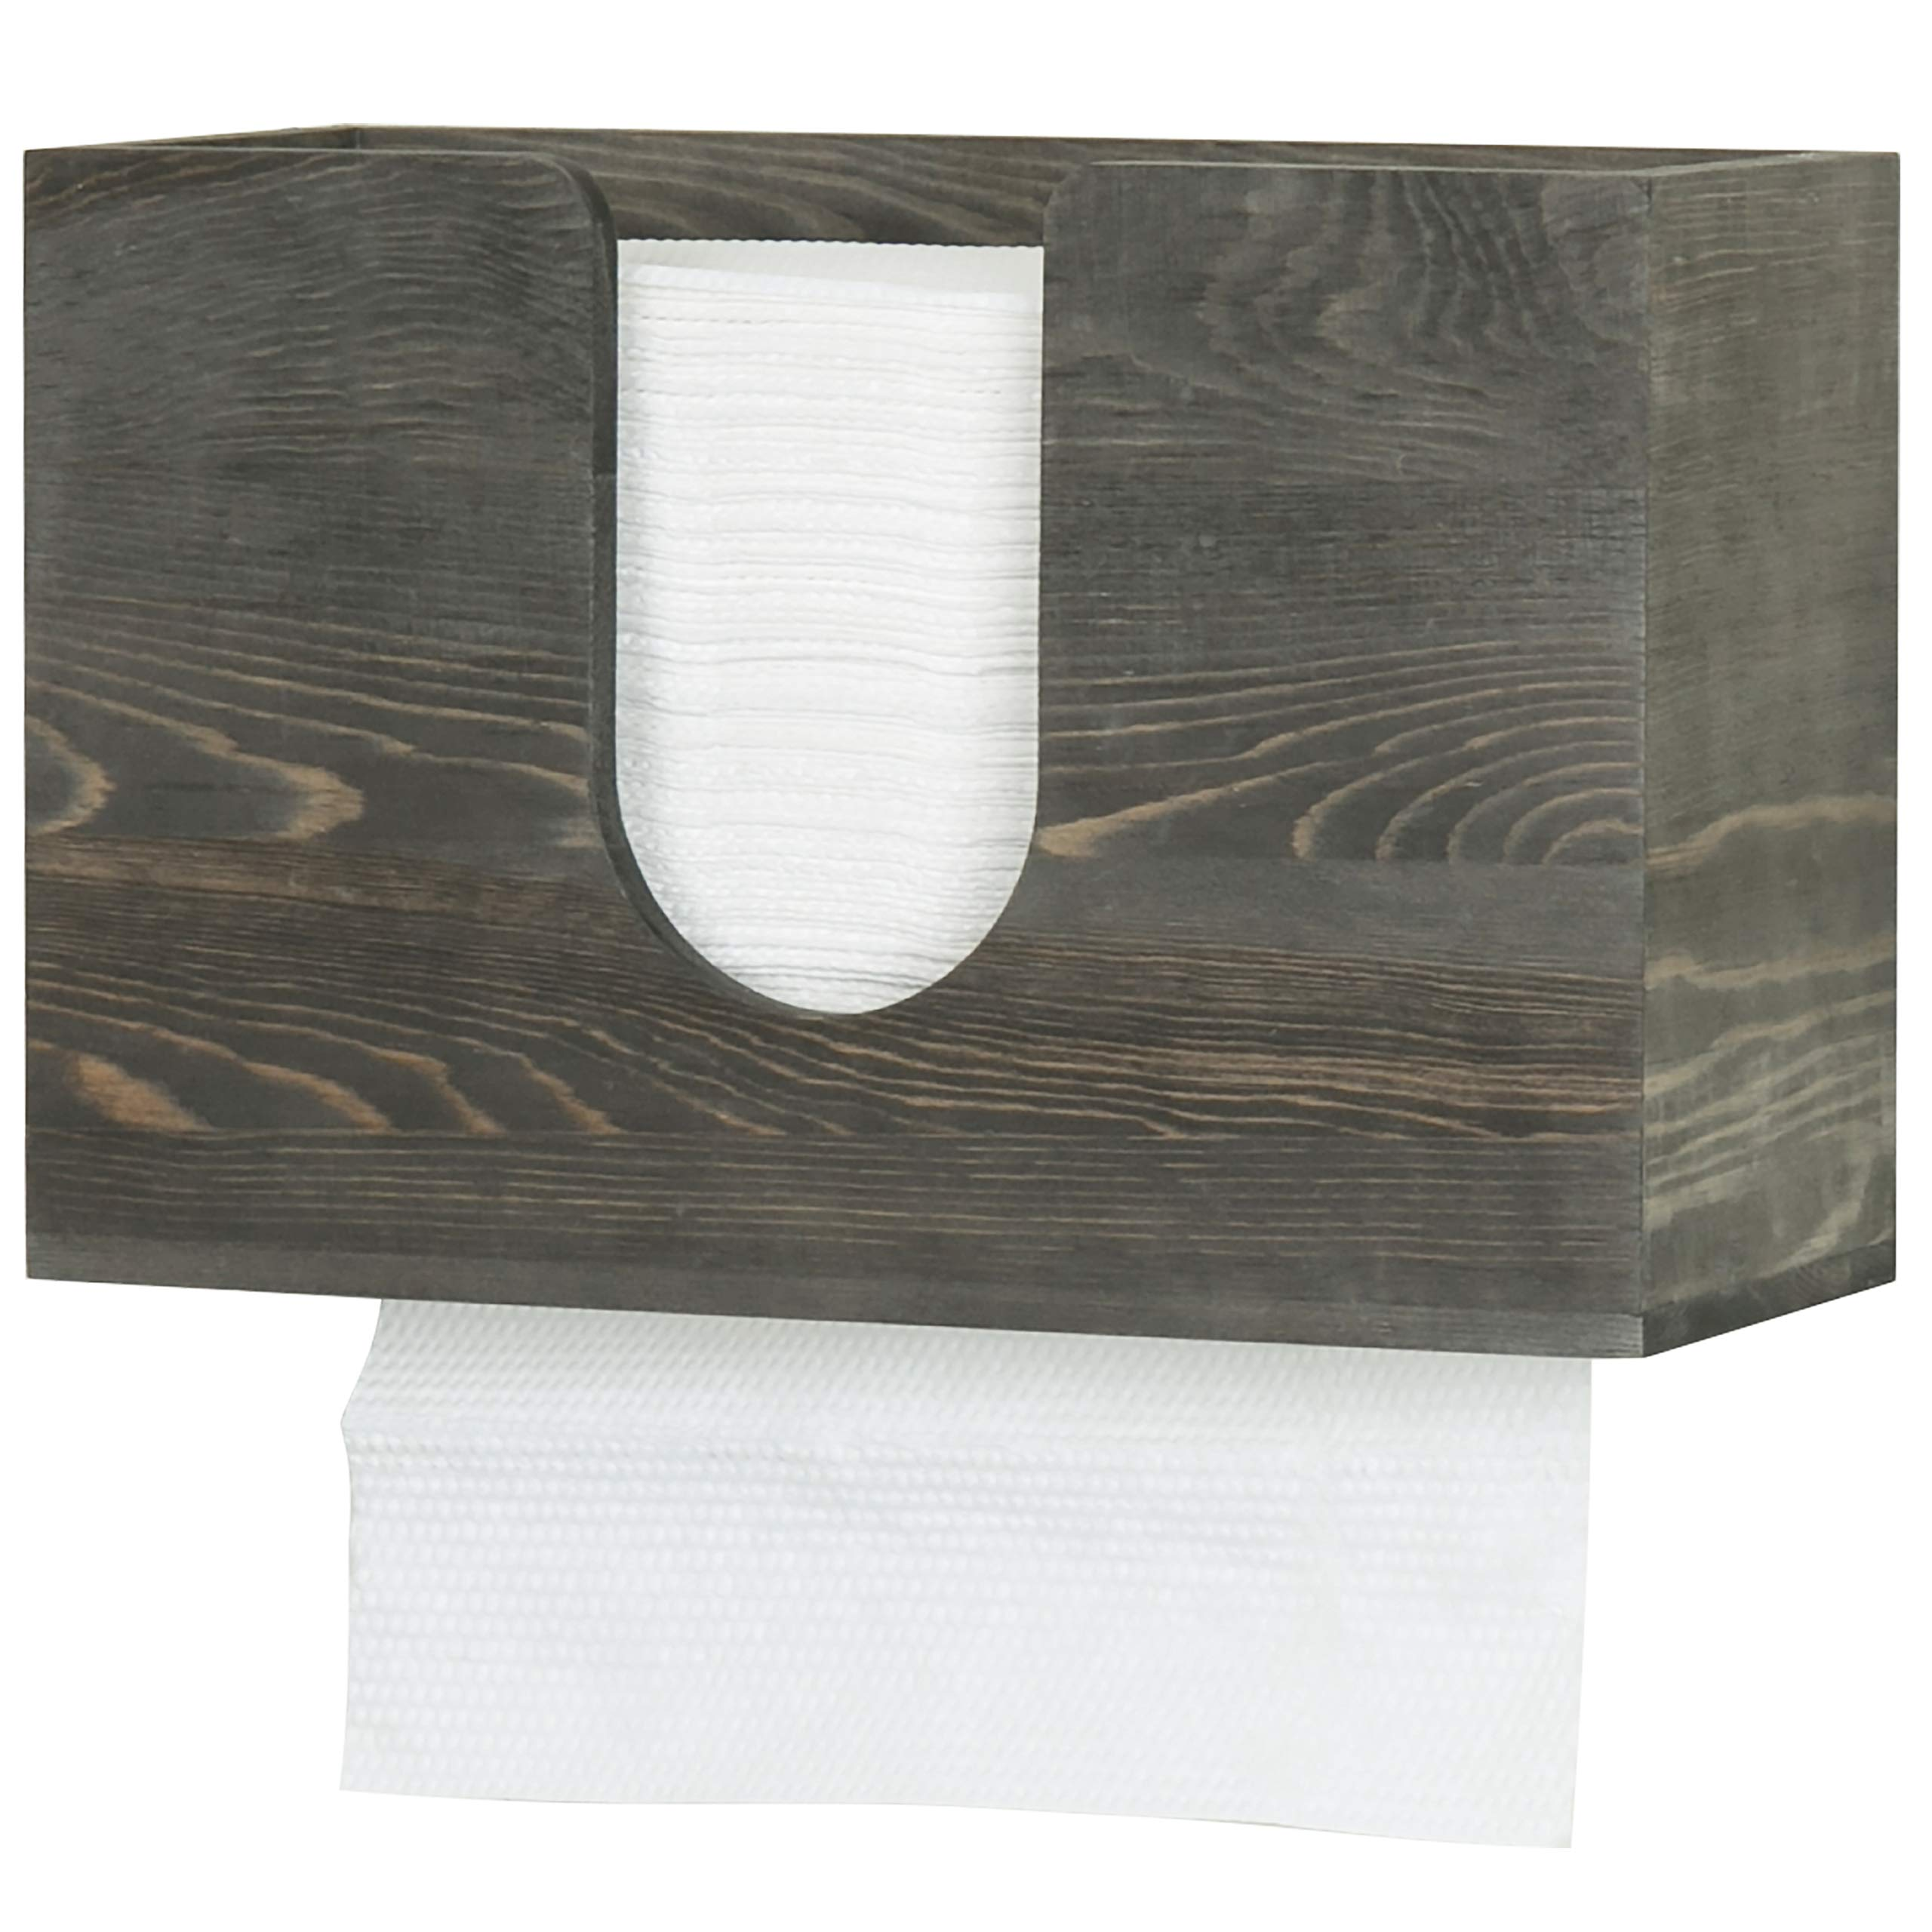 Amazon Com Mygift Vintage Gray Wood Multifold Z Fold C Fold Trifold Paper Towel Dispenser Wall Mounted Countertop Bathroom Paper Towel Holder Kitchen Dining